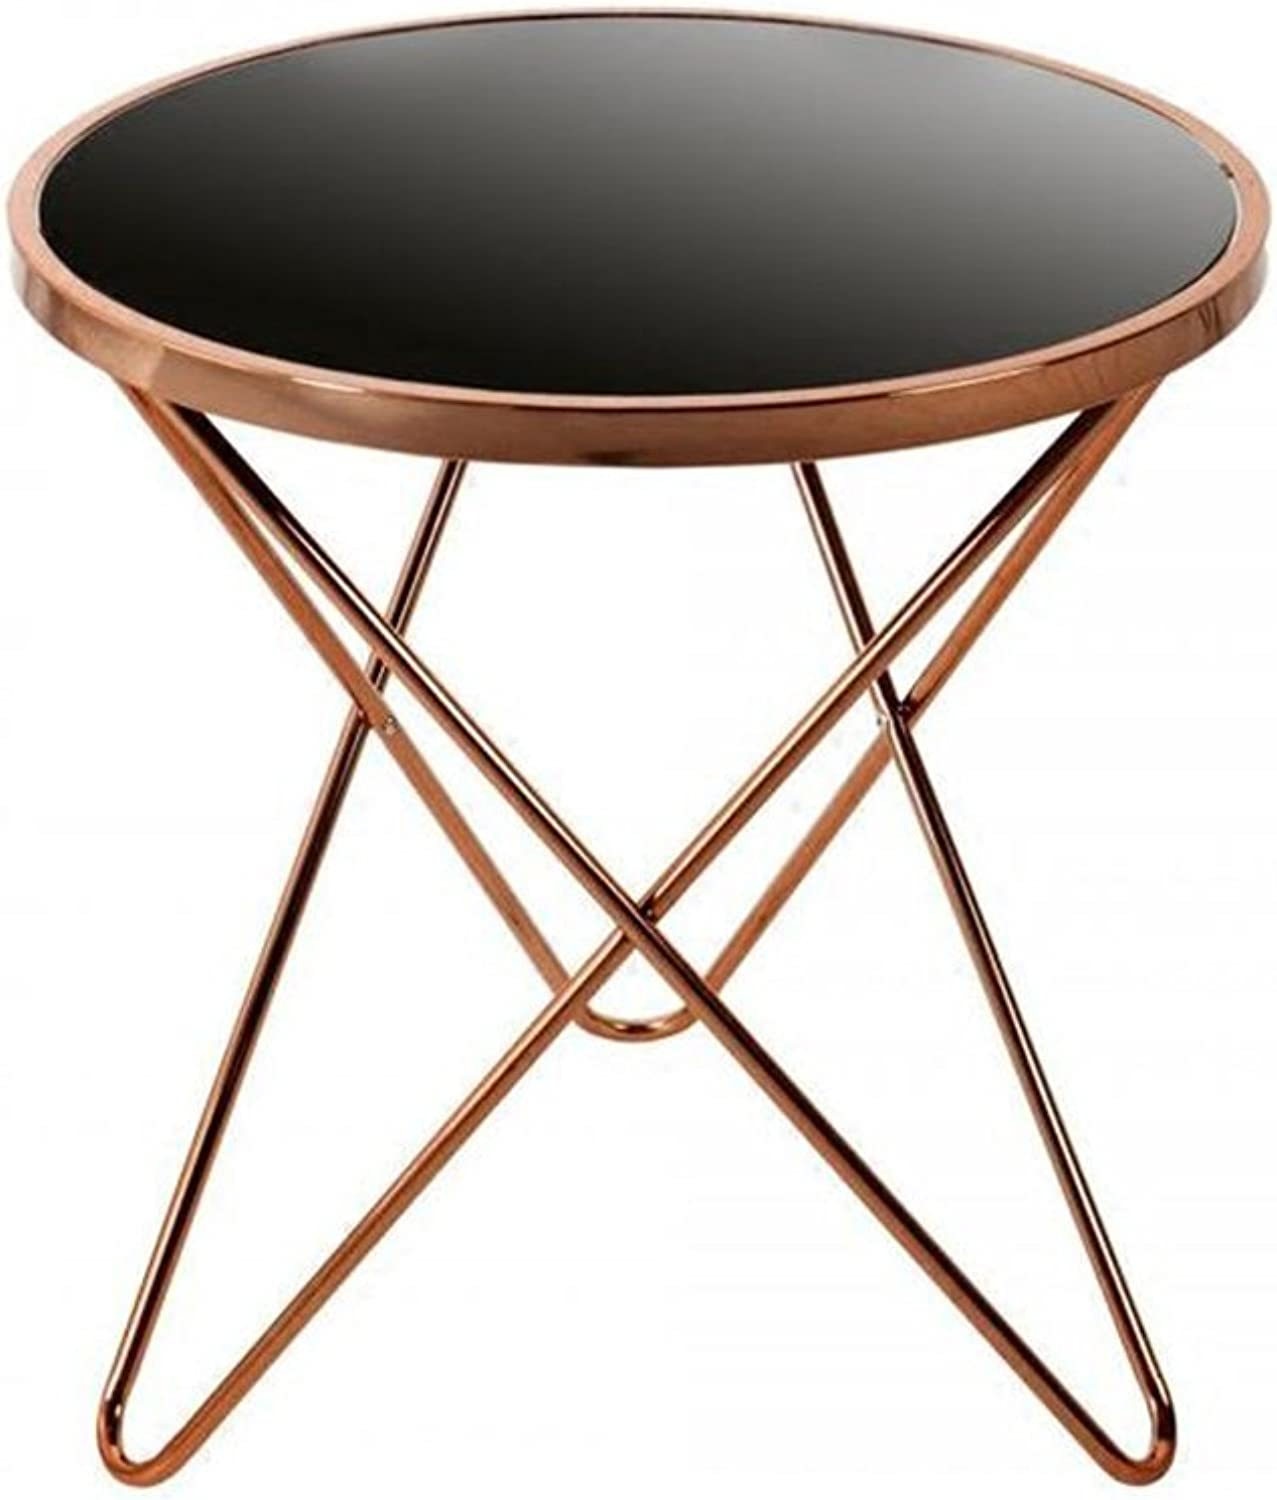 KTYXGKL Scandinavian Sofa Edge A Few Small Coffee Table Tea Table Side Table Simple Modern Iron Bedside Table Balcony Small Round Table Folding Table